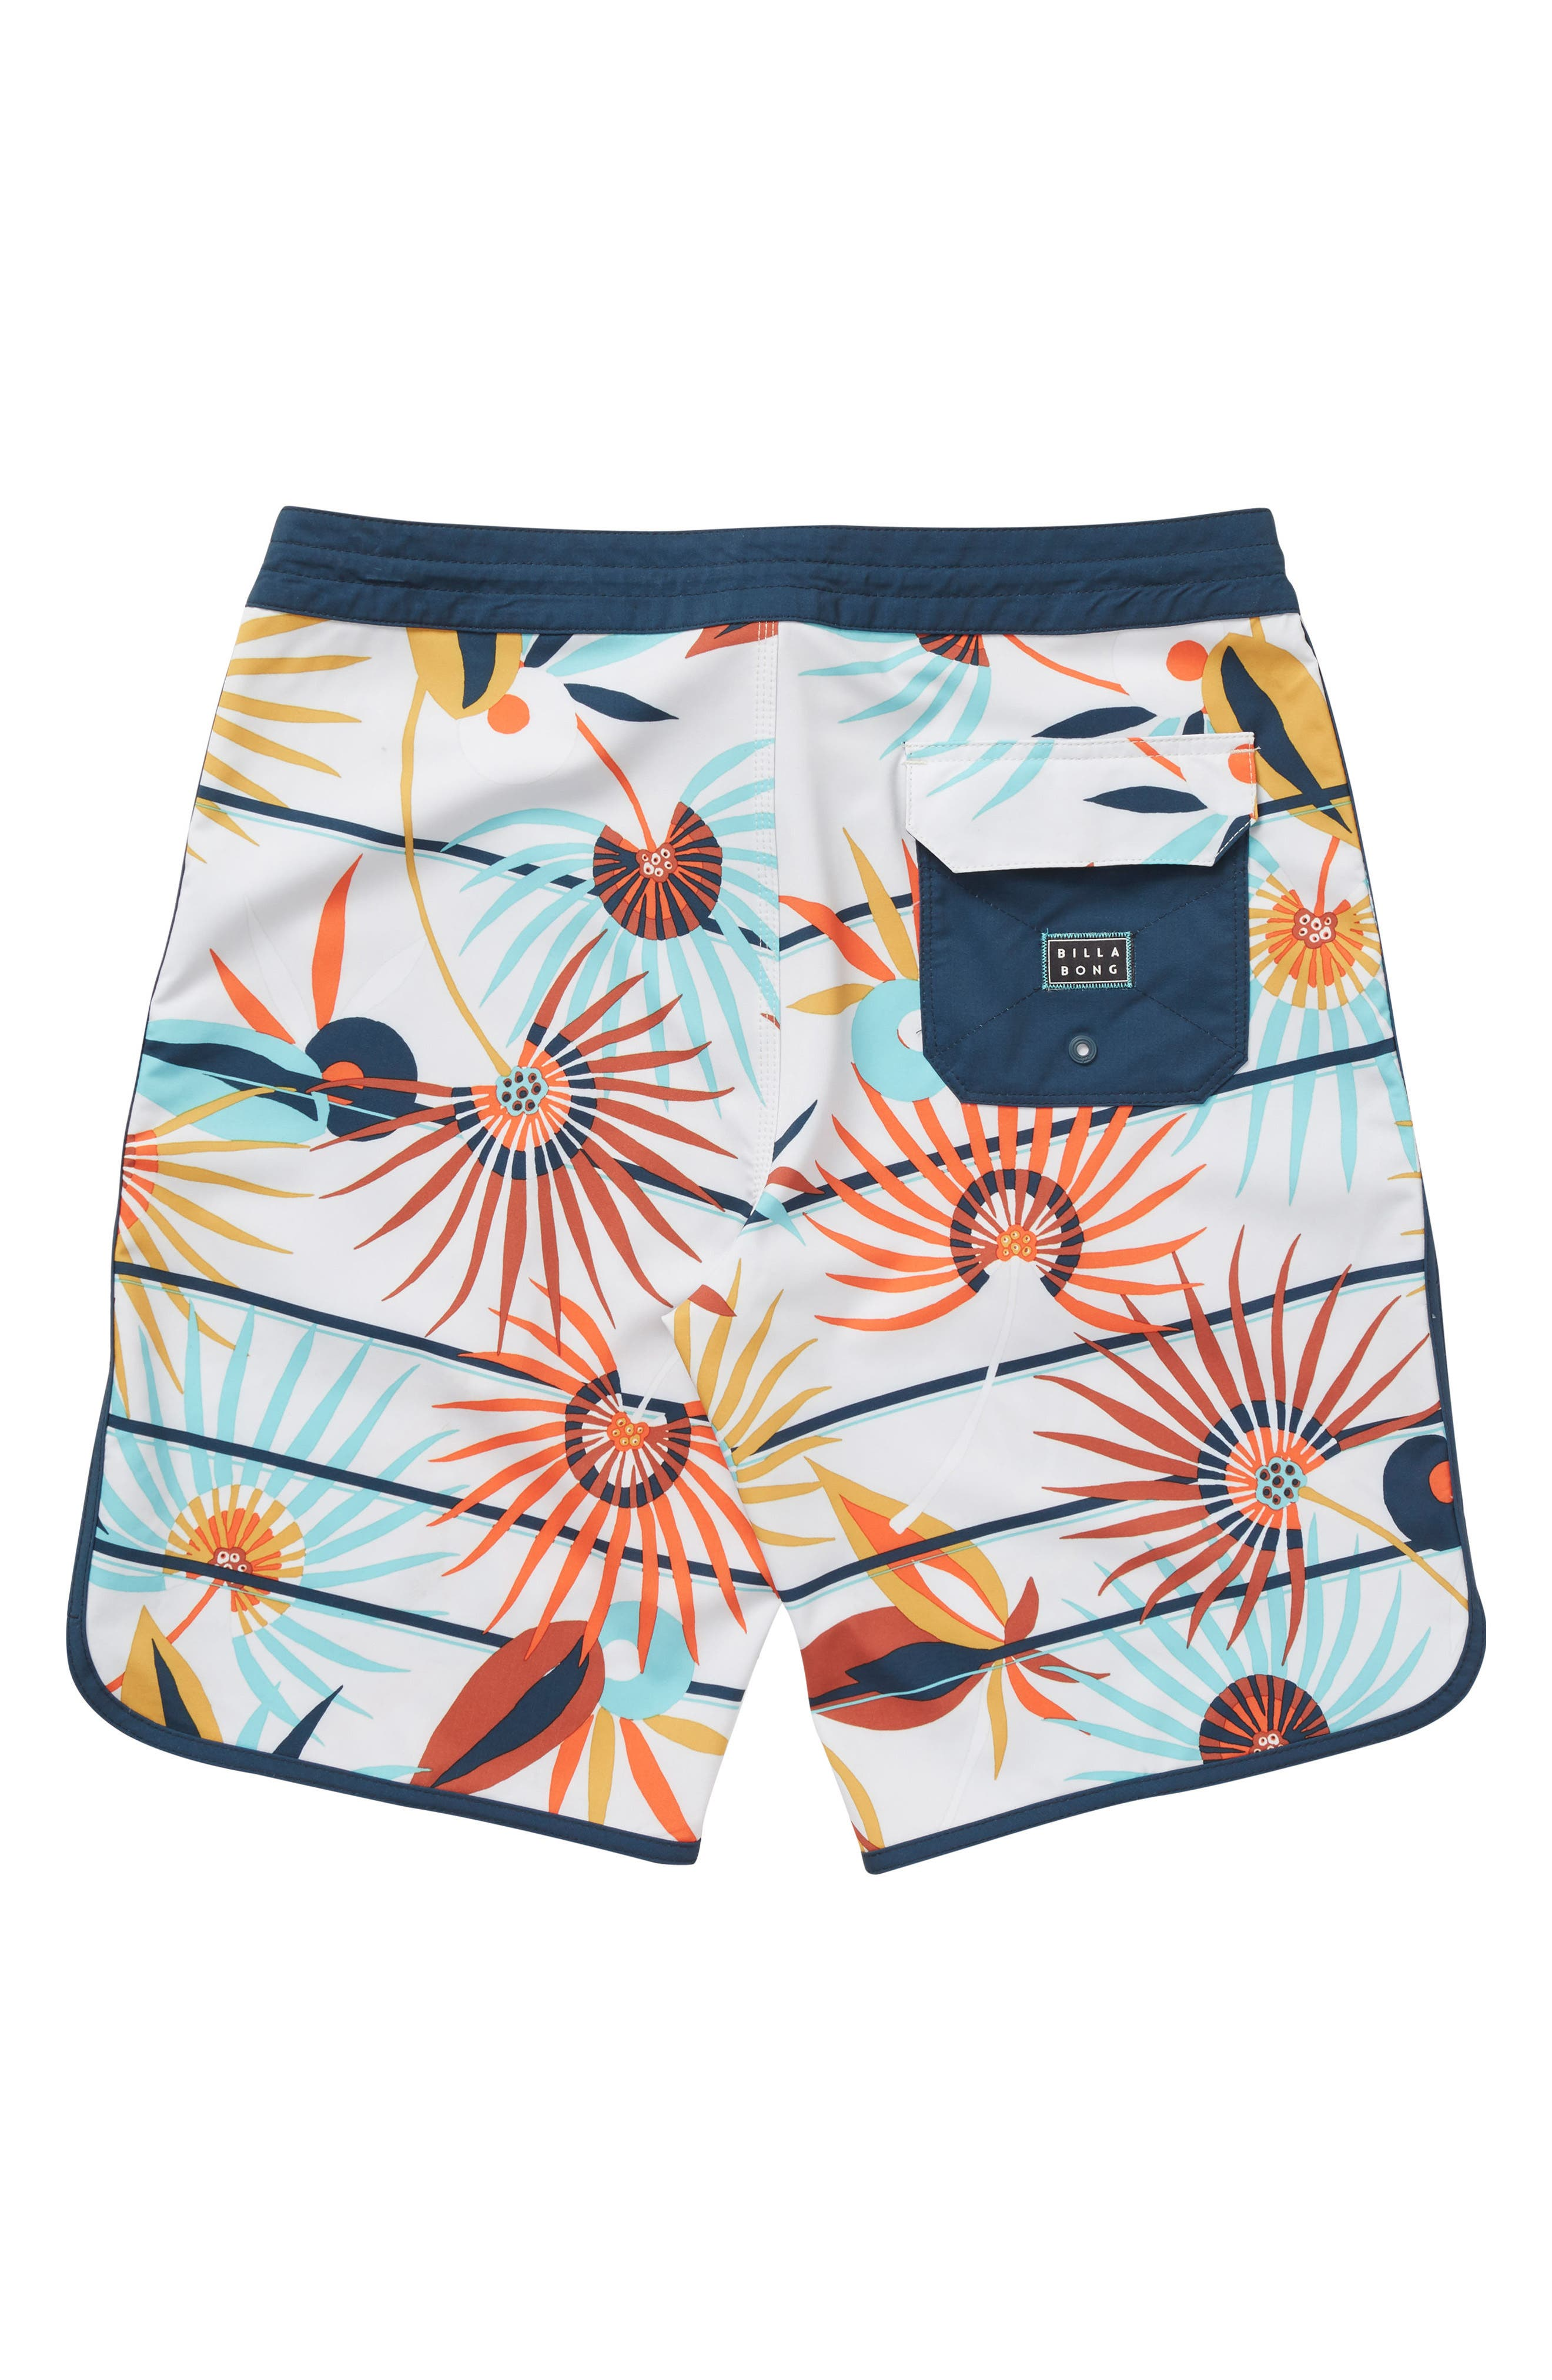 73 LT Lineup Swim Trunks,                             Alternate thumbnail 3, color,